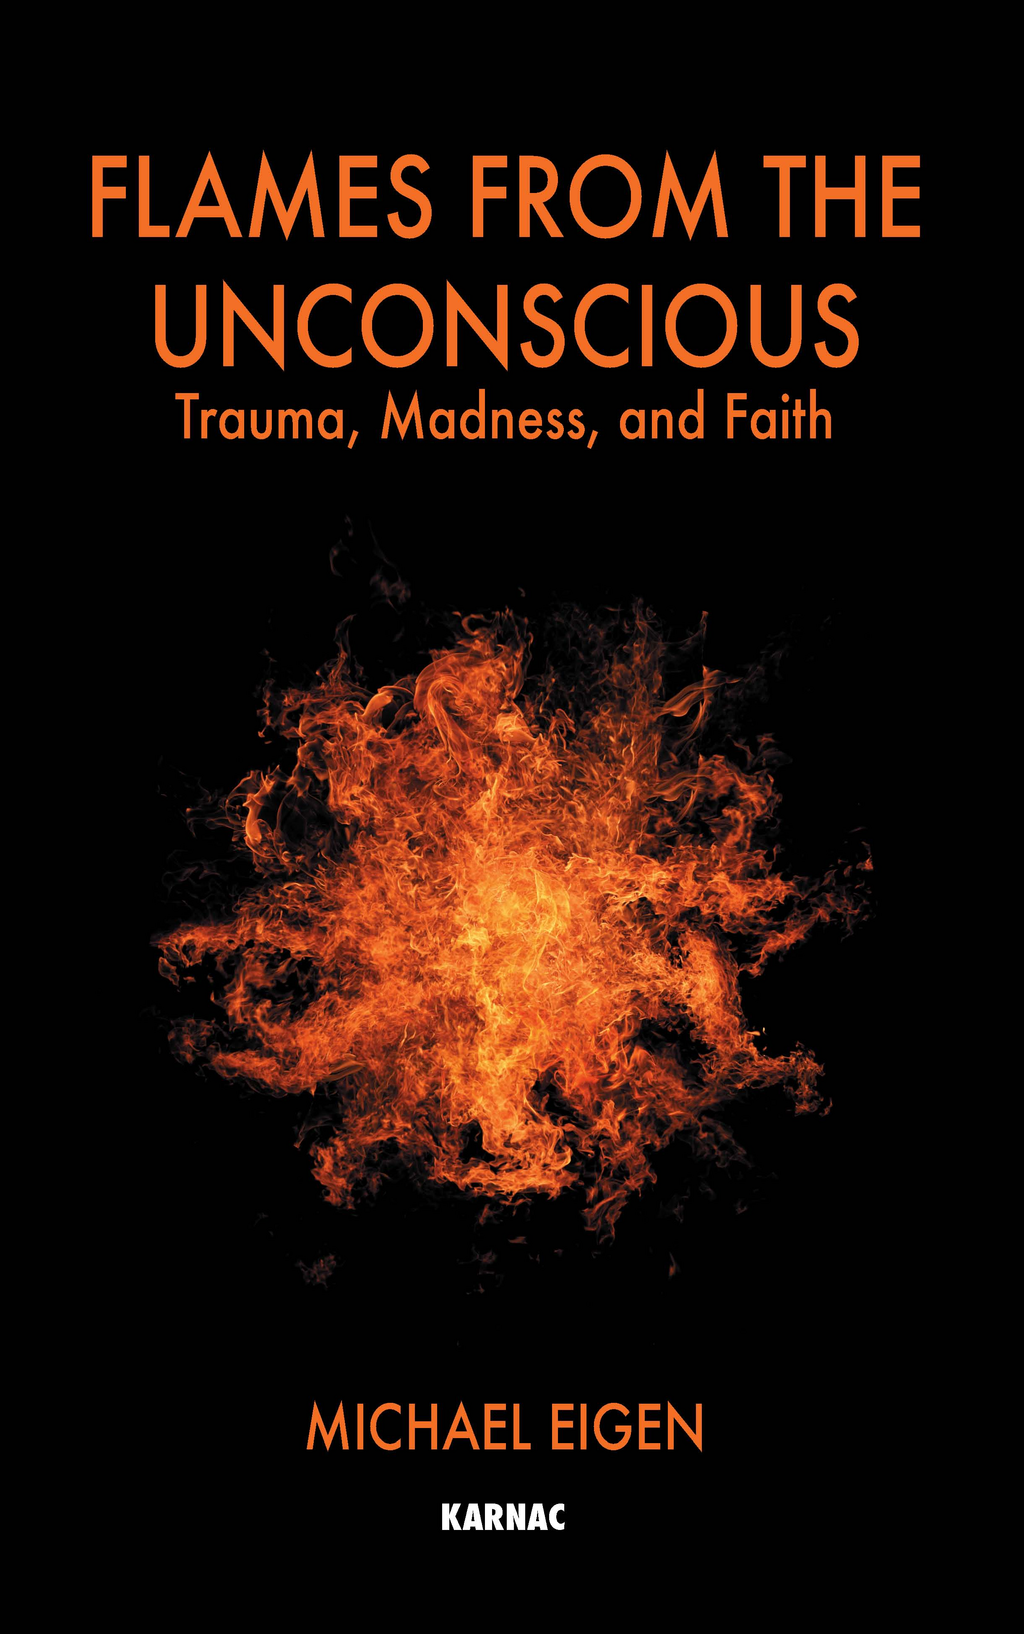 Flames from the Unconscious: Trauma, Madness, and Faith By: Michael Eigen